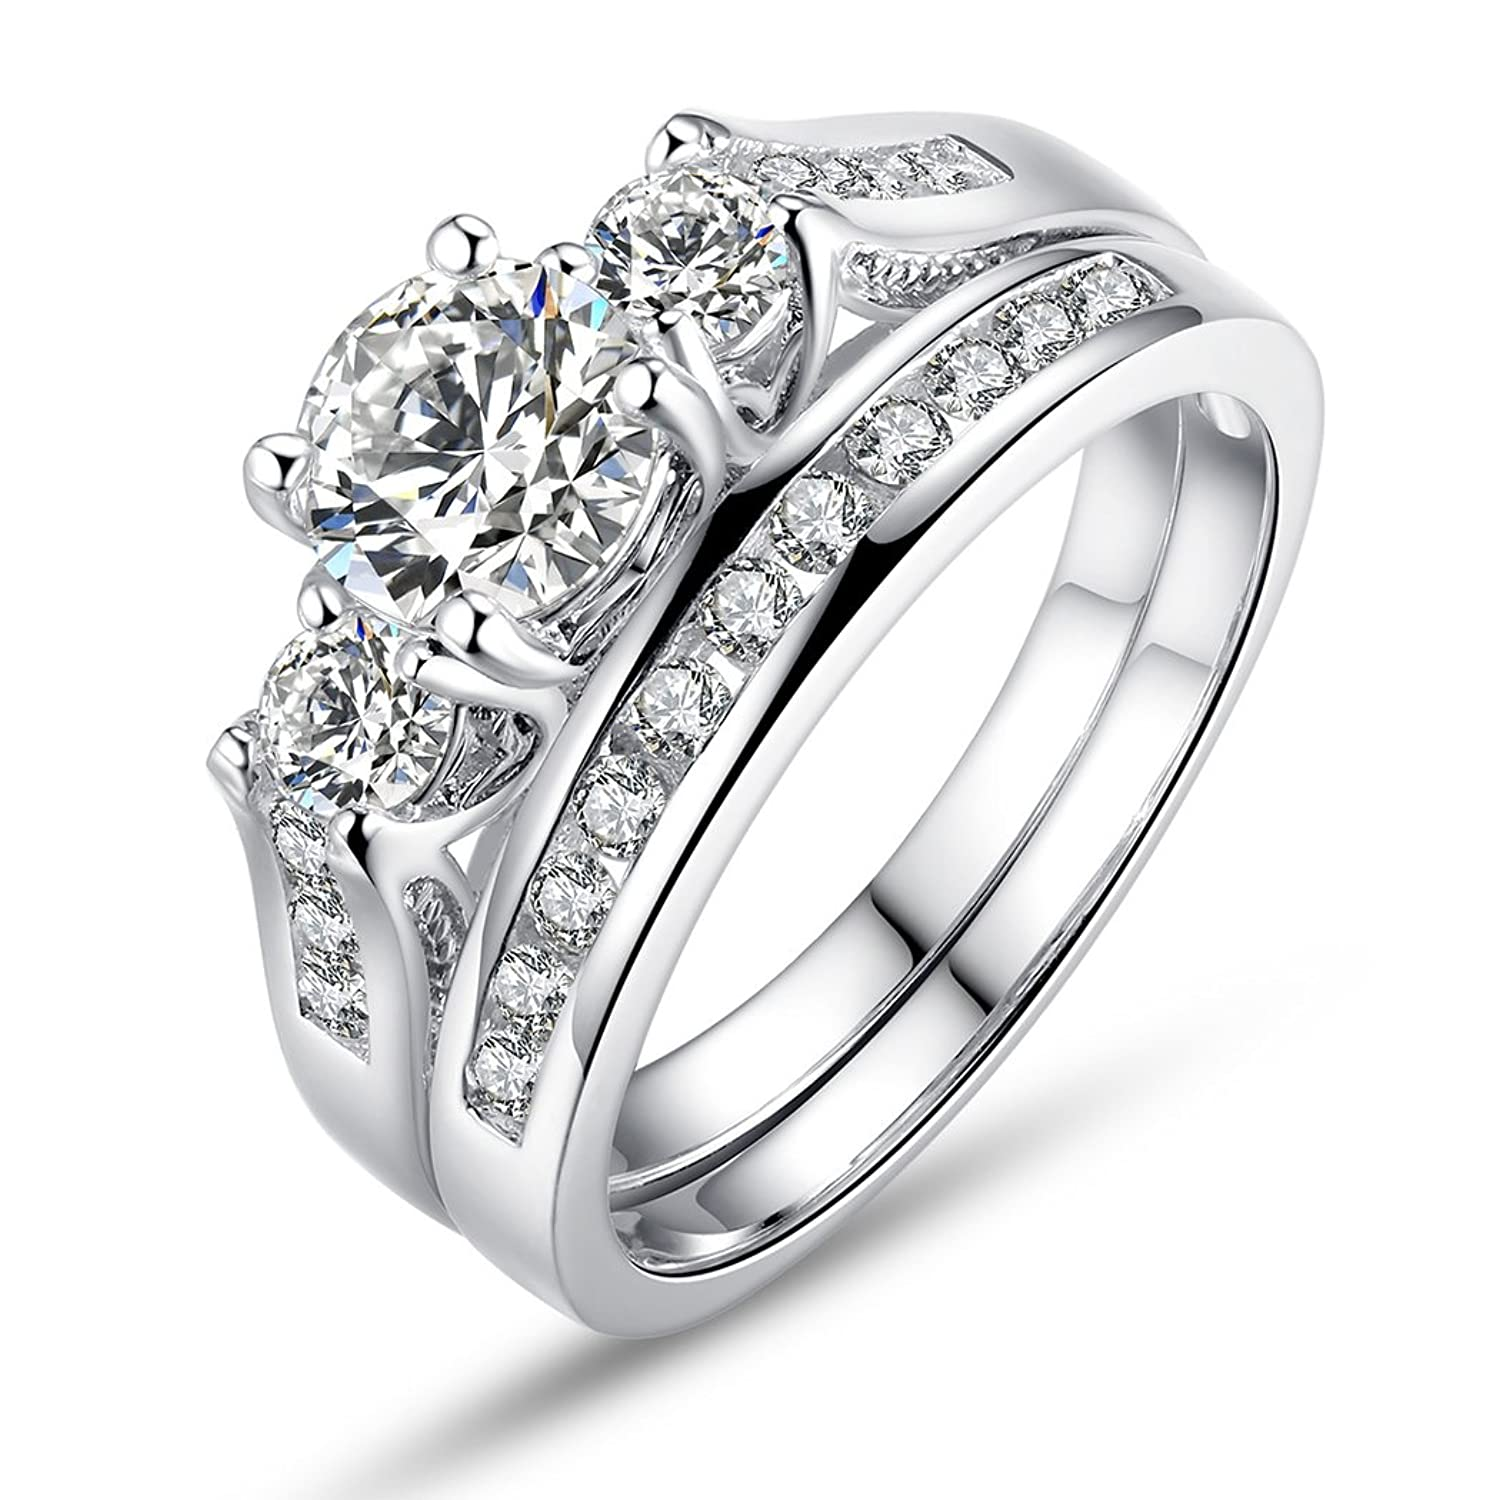 op av platinum wedding usm bands ring band s men co mens engagement cost m classic milgrain tiffany